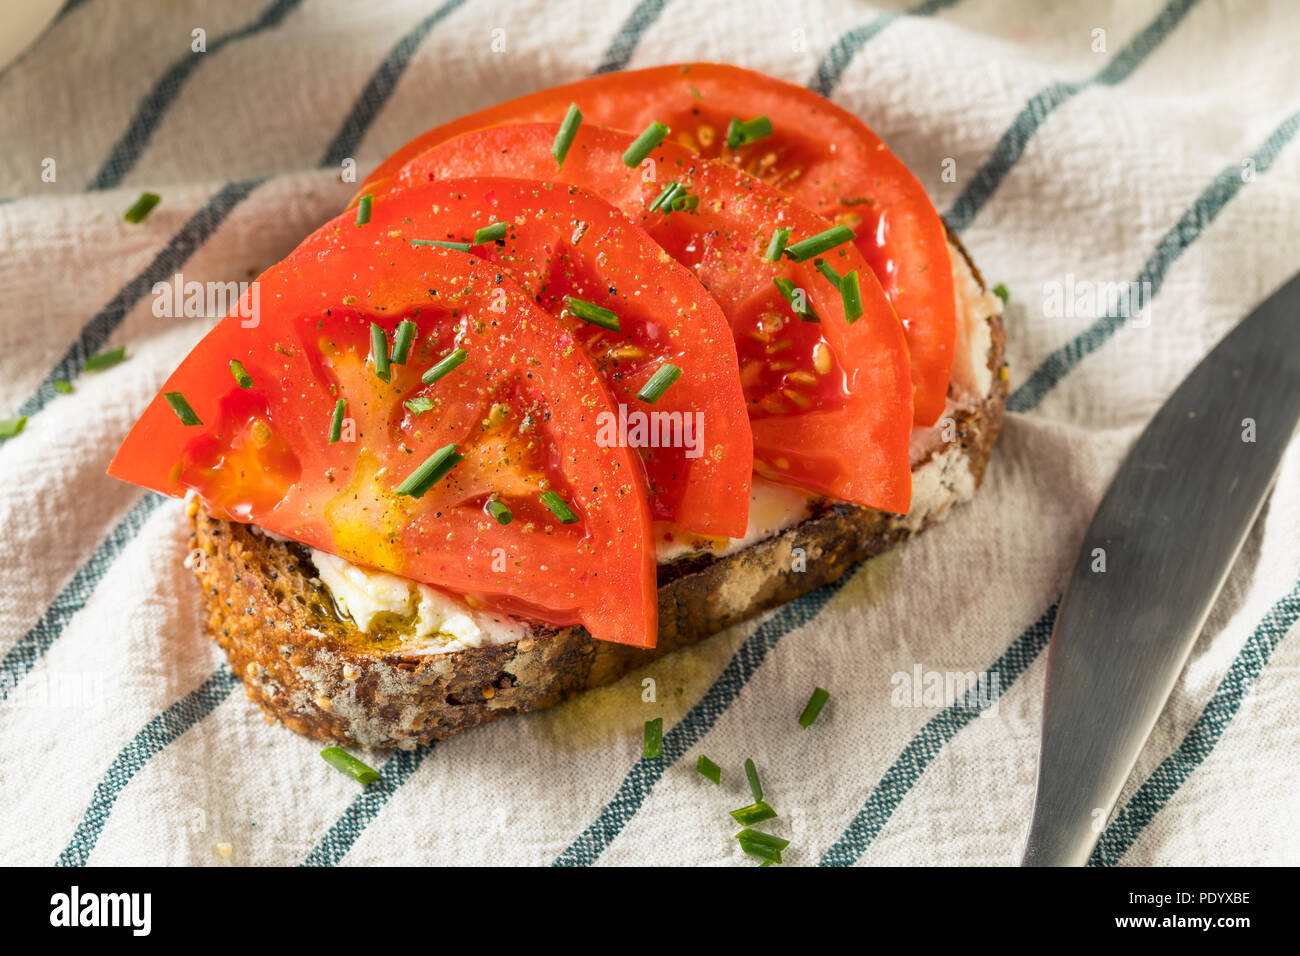 Trendy Homemade Tomato Toast with Goat Cheese and Chives - Stock Image